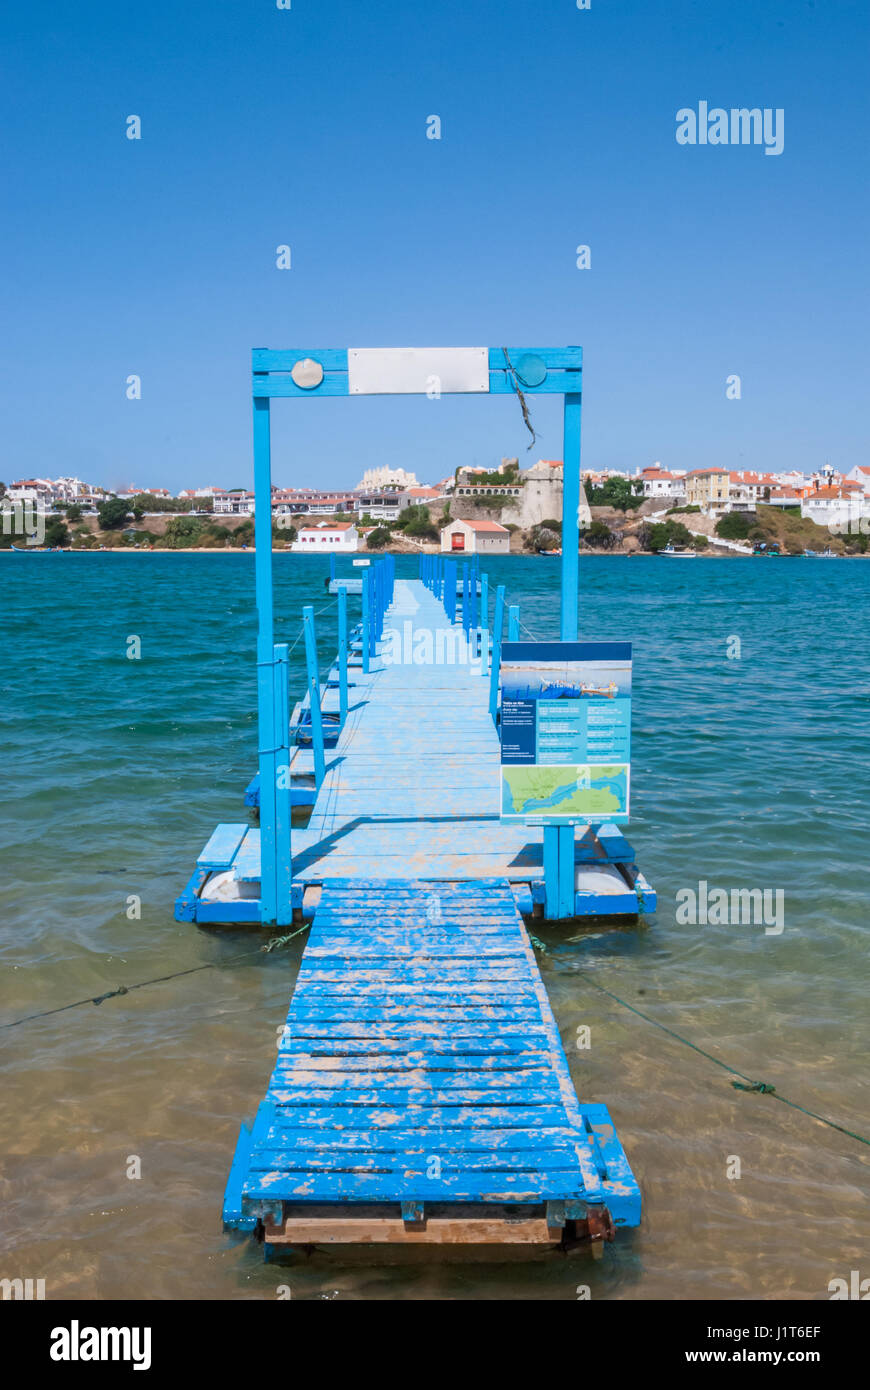 Platform for the entrance of boat passengers from the beach - Stock Image